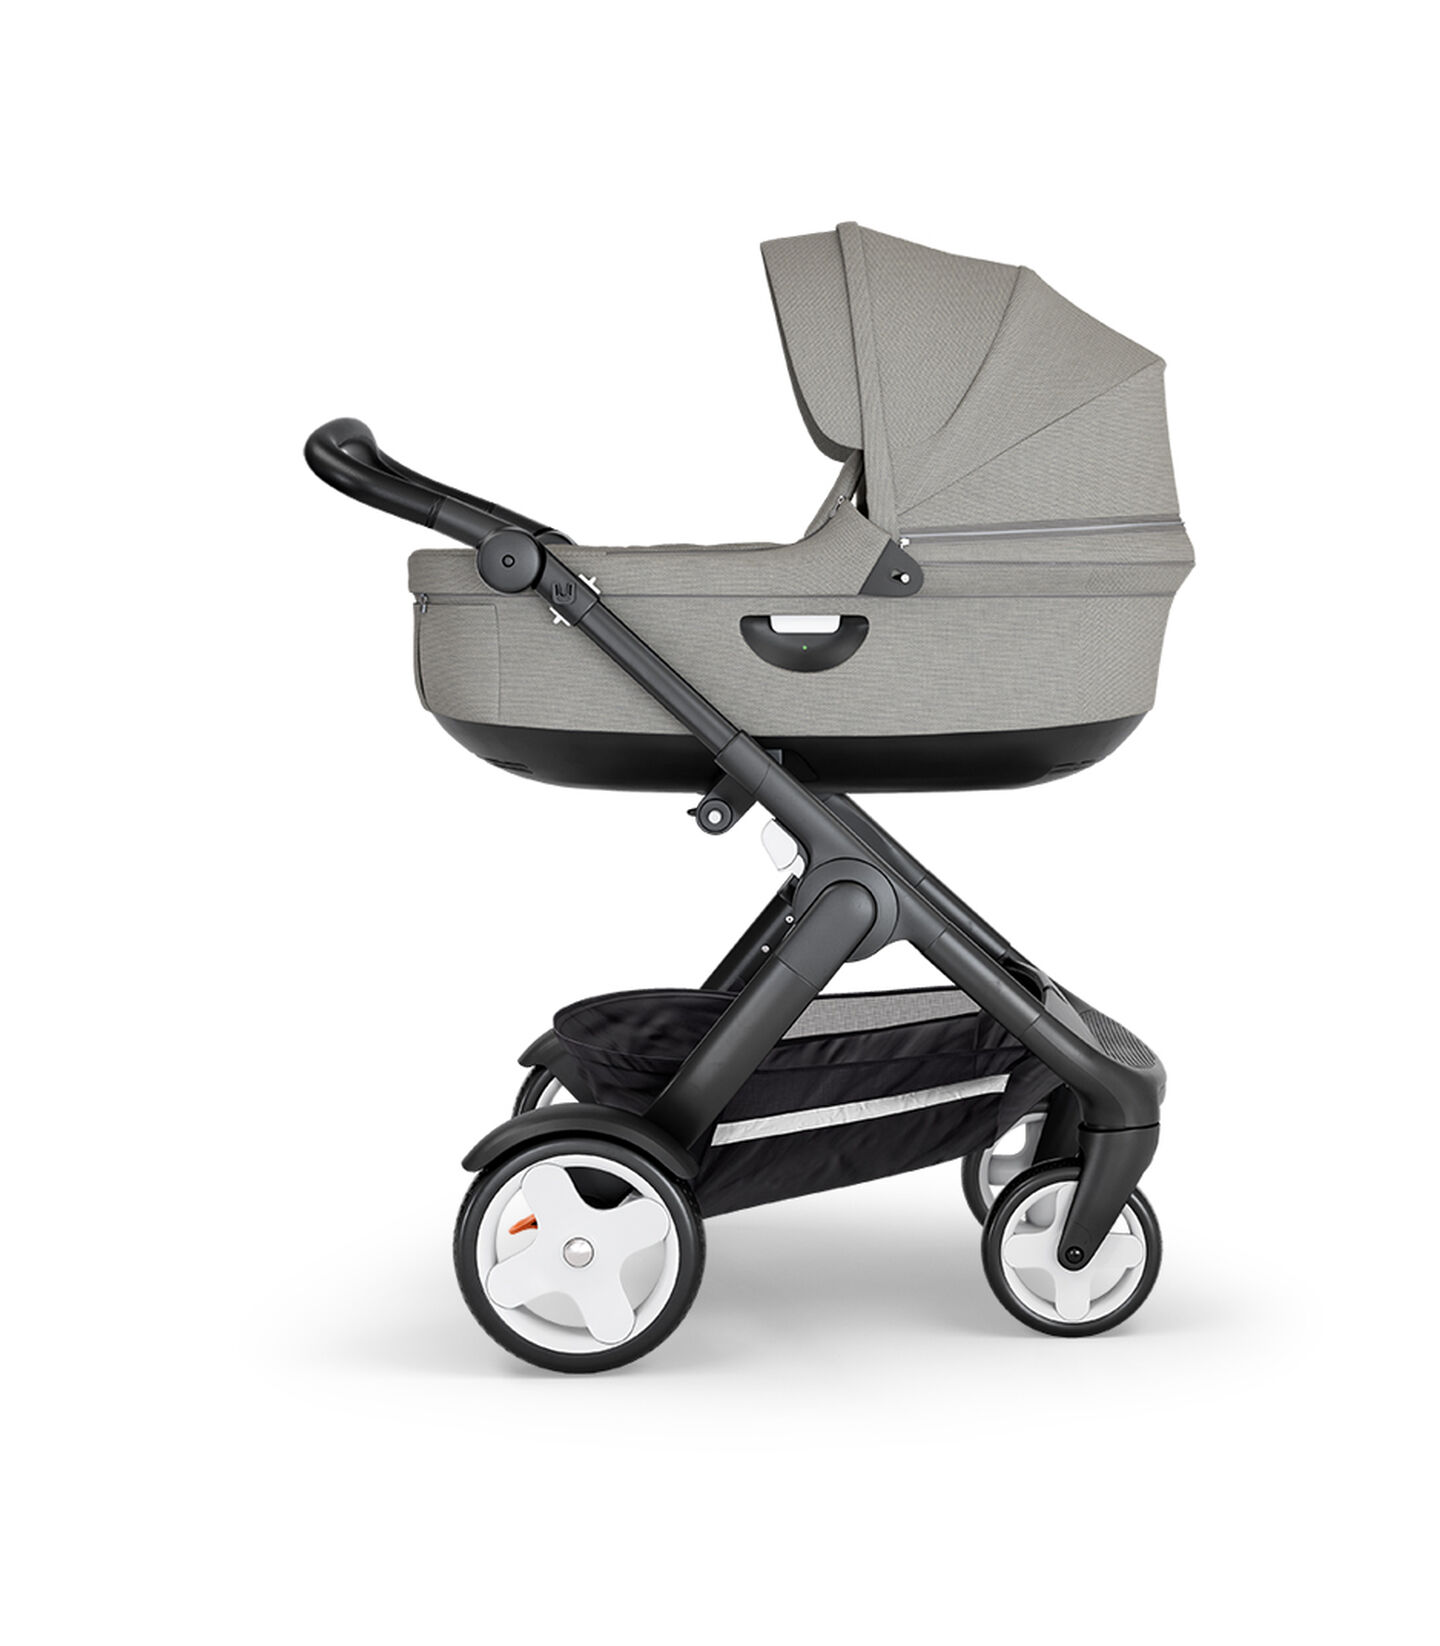 Stokke® Trailz™ with Black Chassis, Black Leatherette and Classic Wheels. Stokke® Stroller Carry Cot, Brushed Grey.